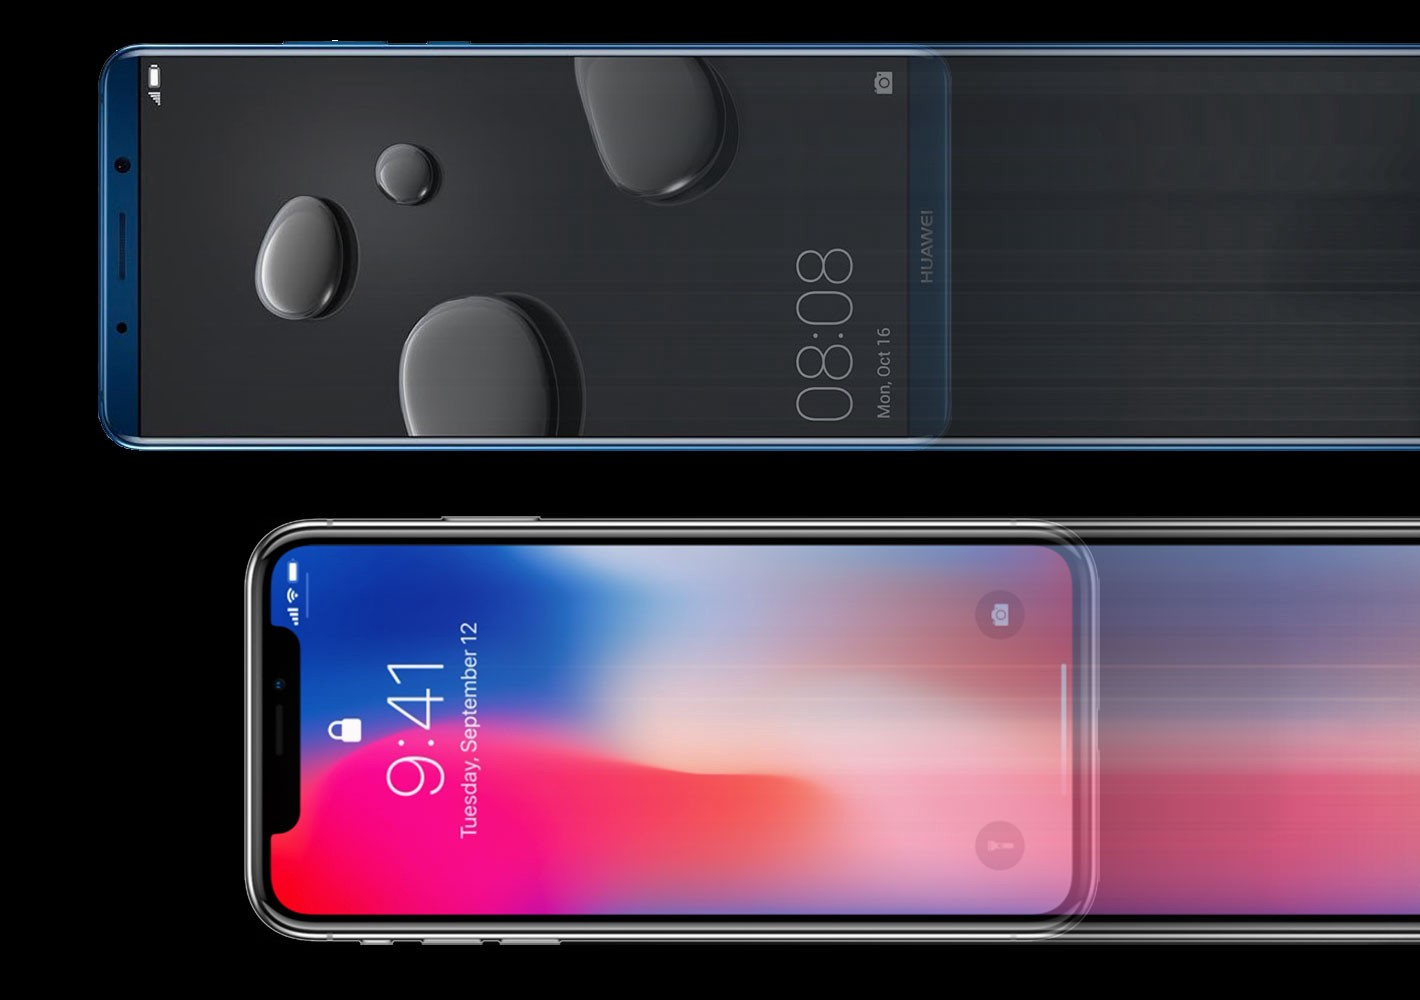 Huawei Mate 10 Pro vs. Apple iPhone X: The Ultimate Comparison